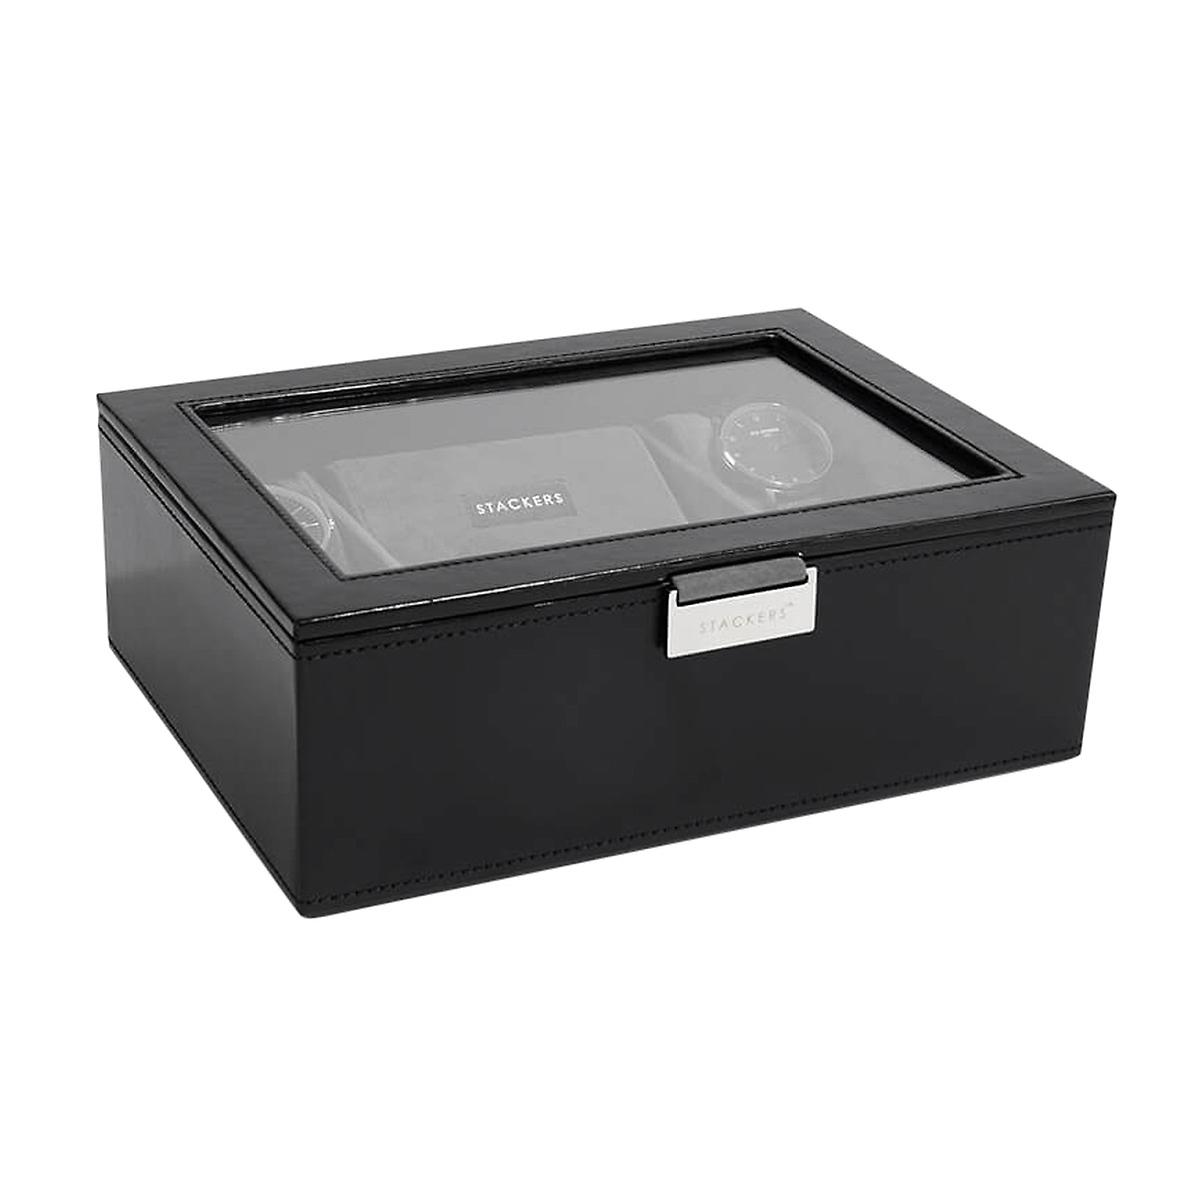 Stackers Black Watch Boxes